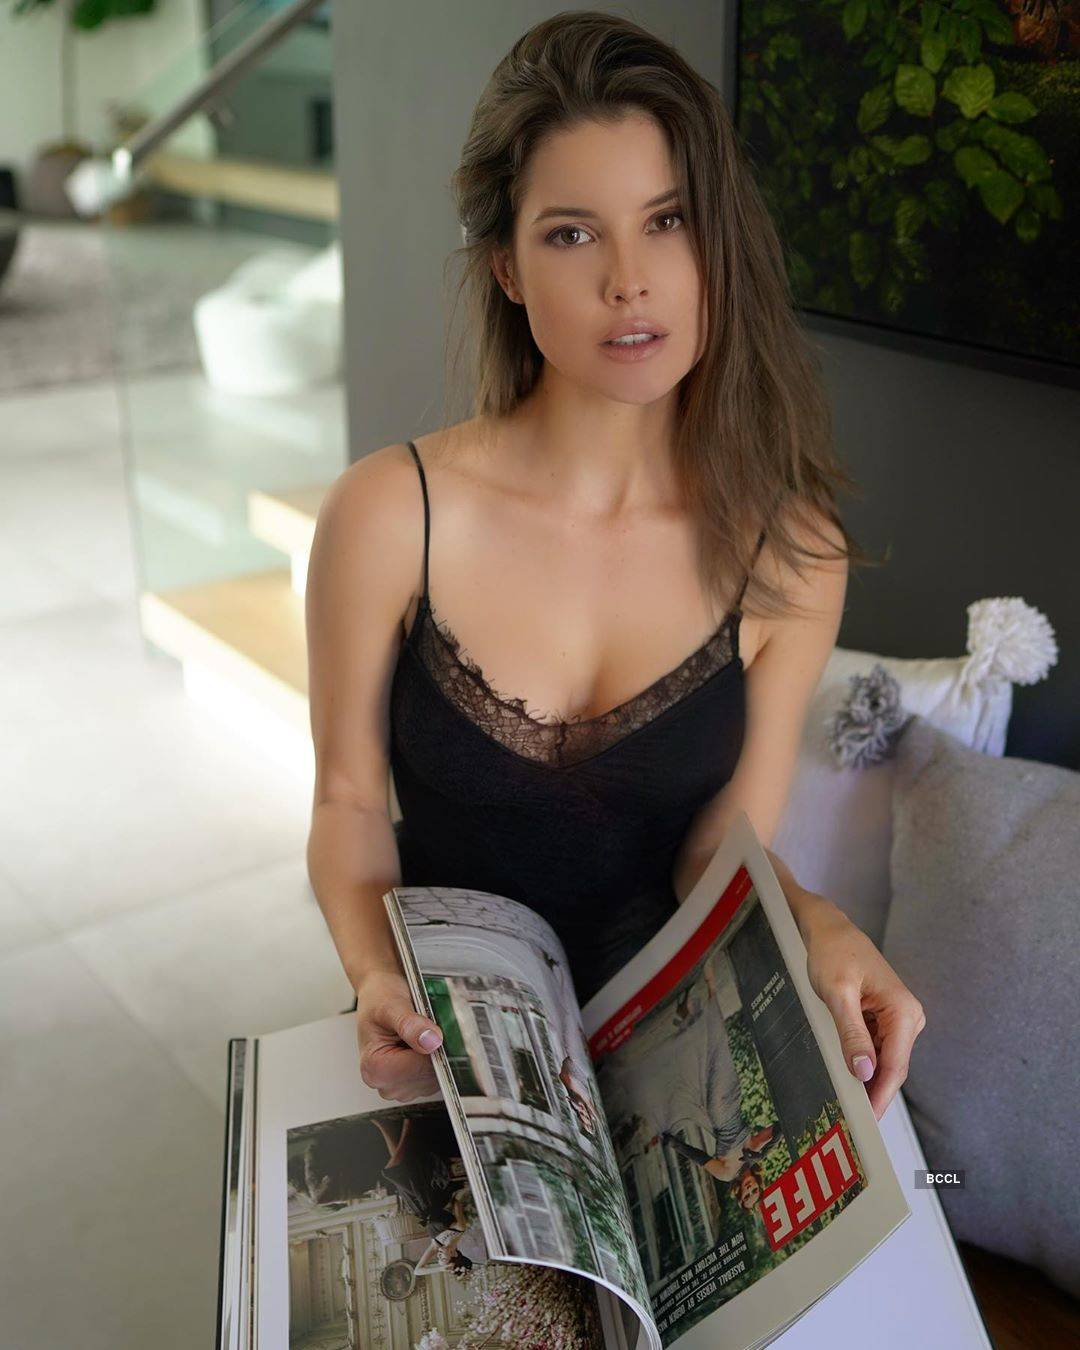 These pics of Playboy model & actress Amanda Cerny will take your breath away!